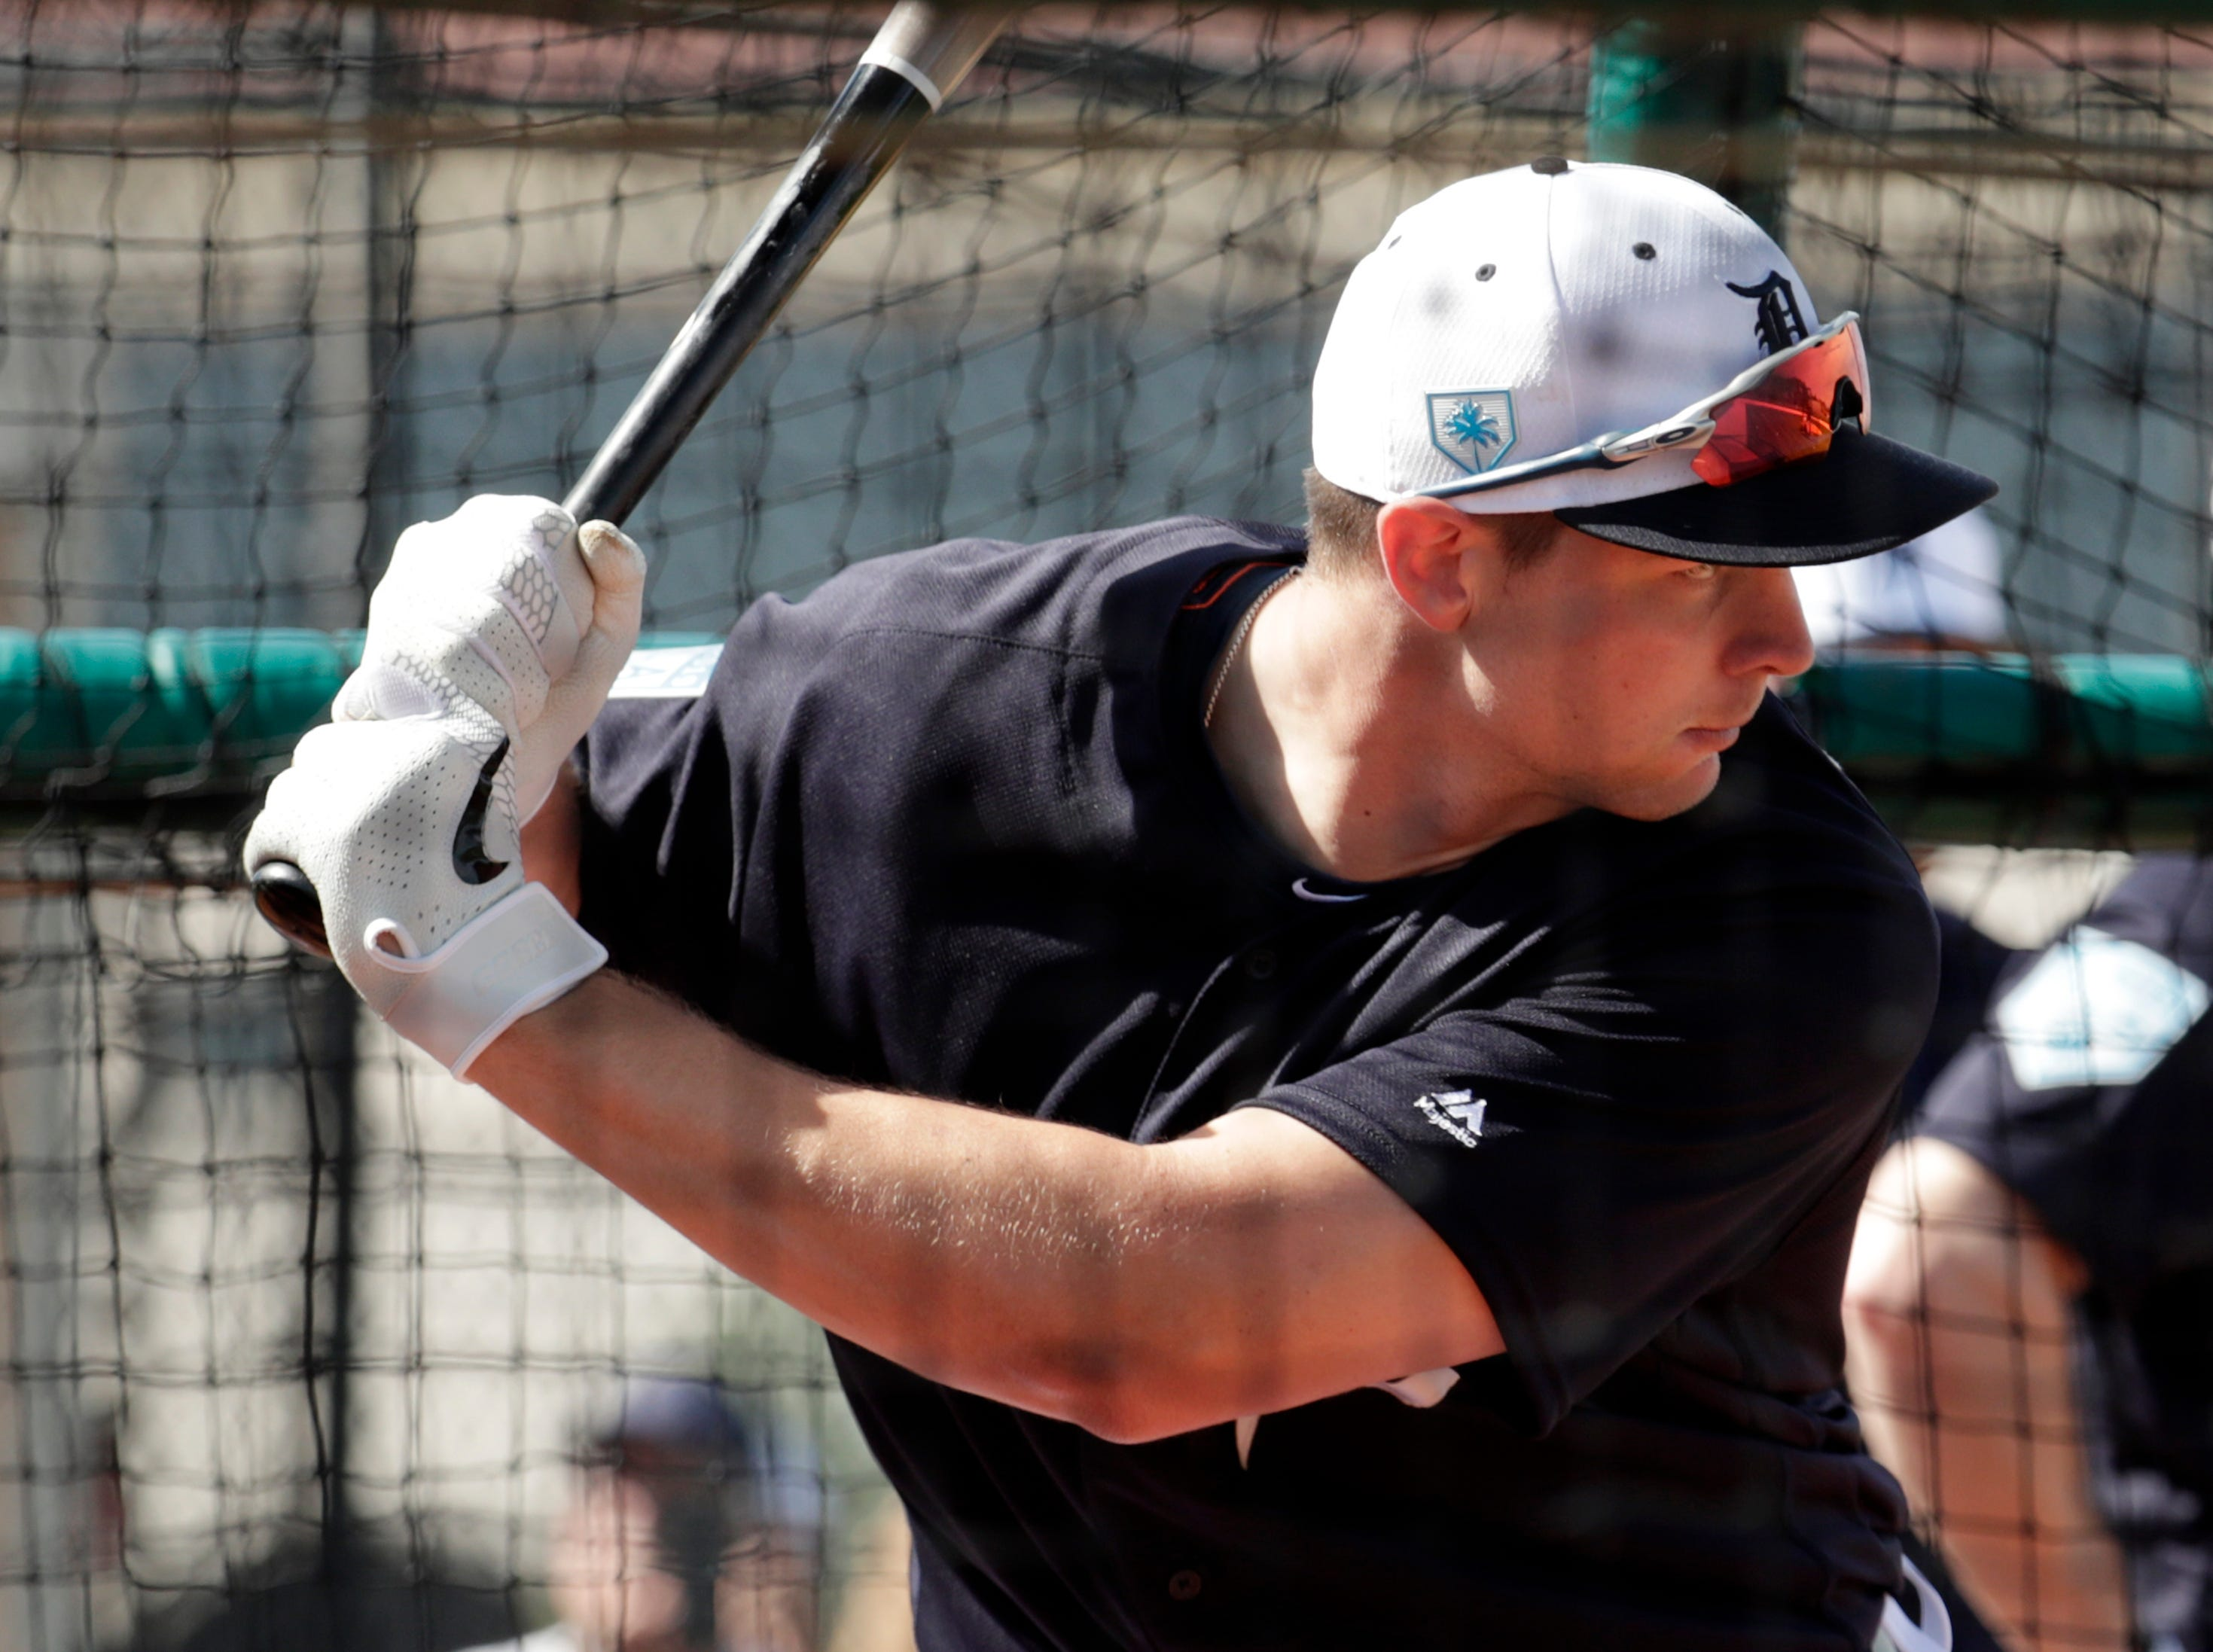 Detroit Tigers catcher Grayson Greiner bats at the Detroit Tigers spring training baseball facility, Friday, Feb. 15, 2019, in Lakeland, Fla.